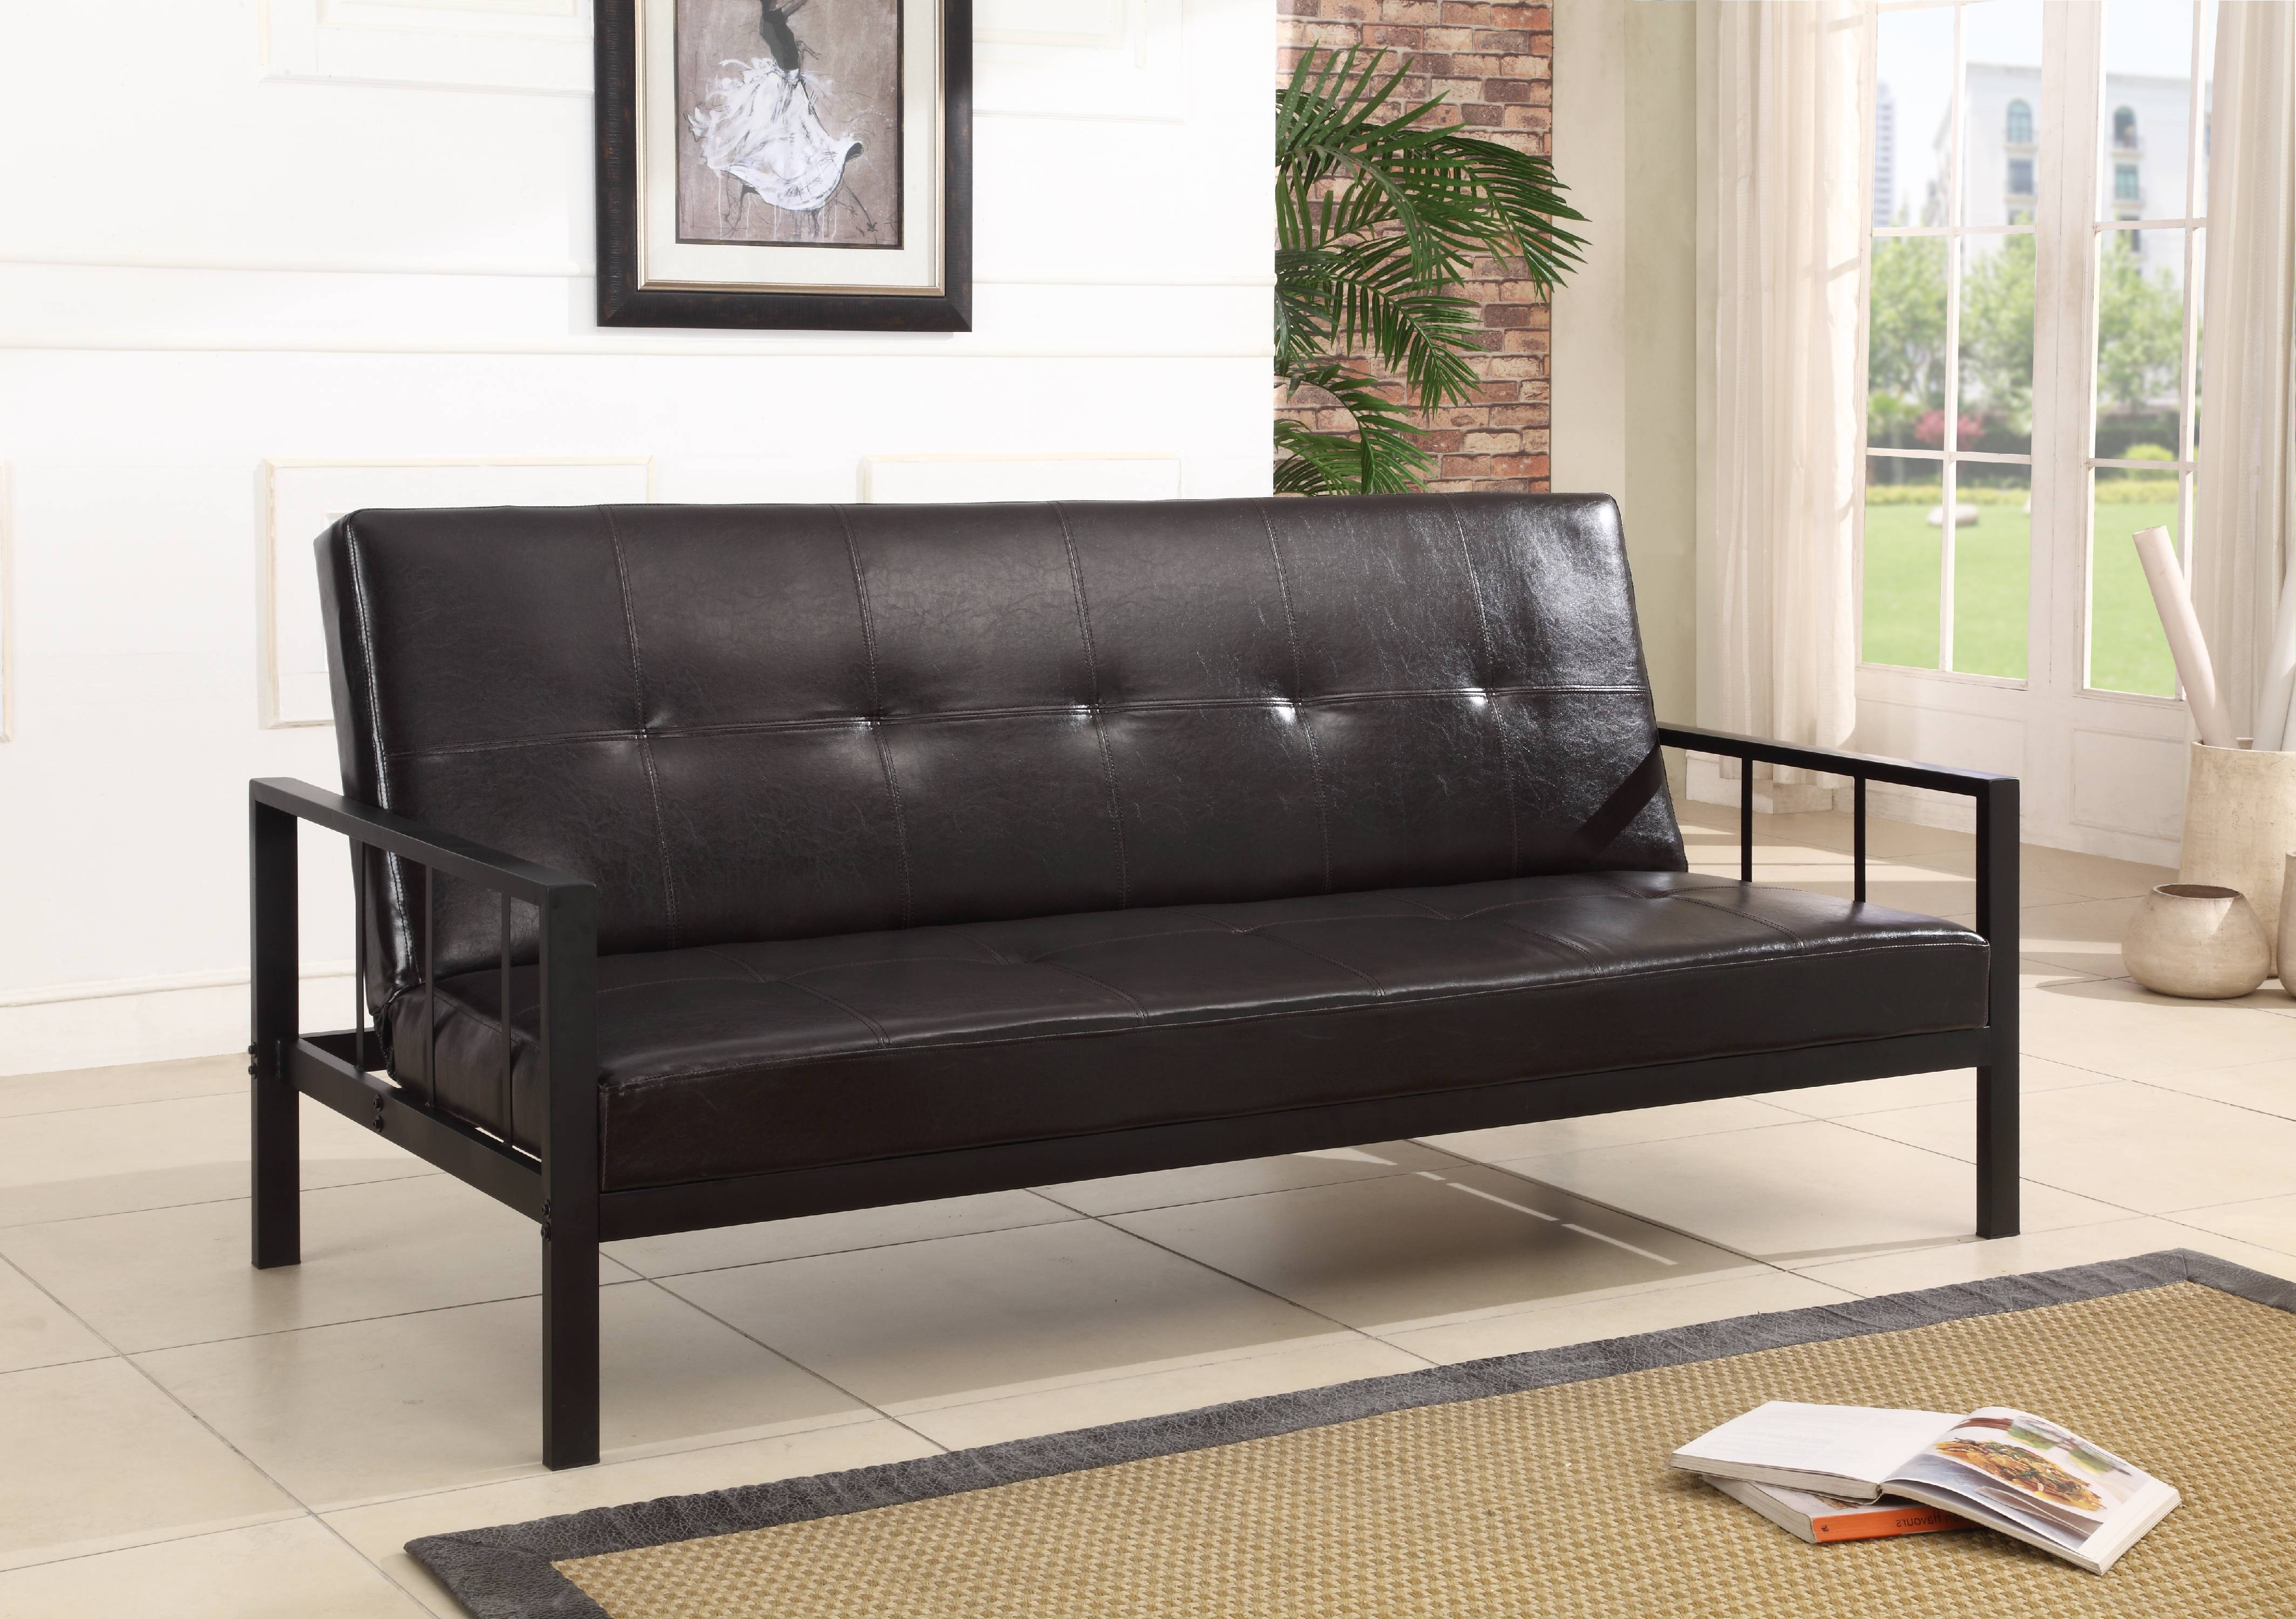 Lamas Black Faux Leather Klik Klak Sofa Futon Sleeper Bed With Adjustable  Back (Heavy Duty